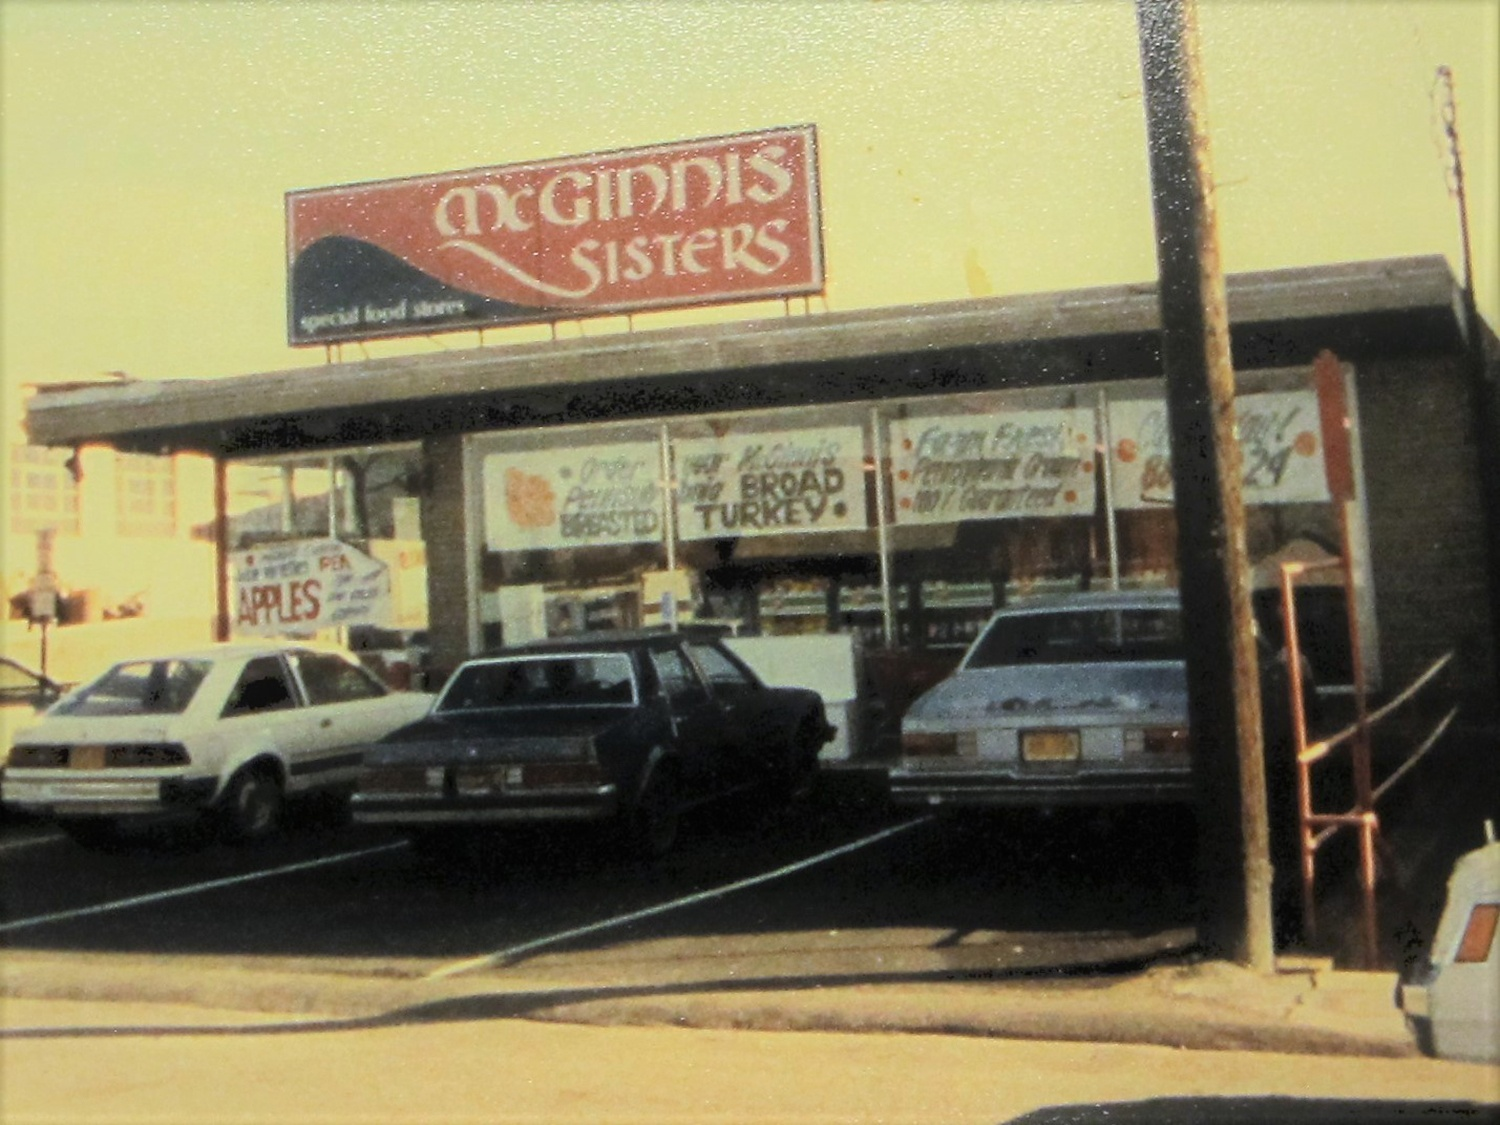 This image shows the McGinnis store in Baldwin sometime in the 1980s.